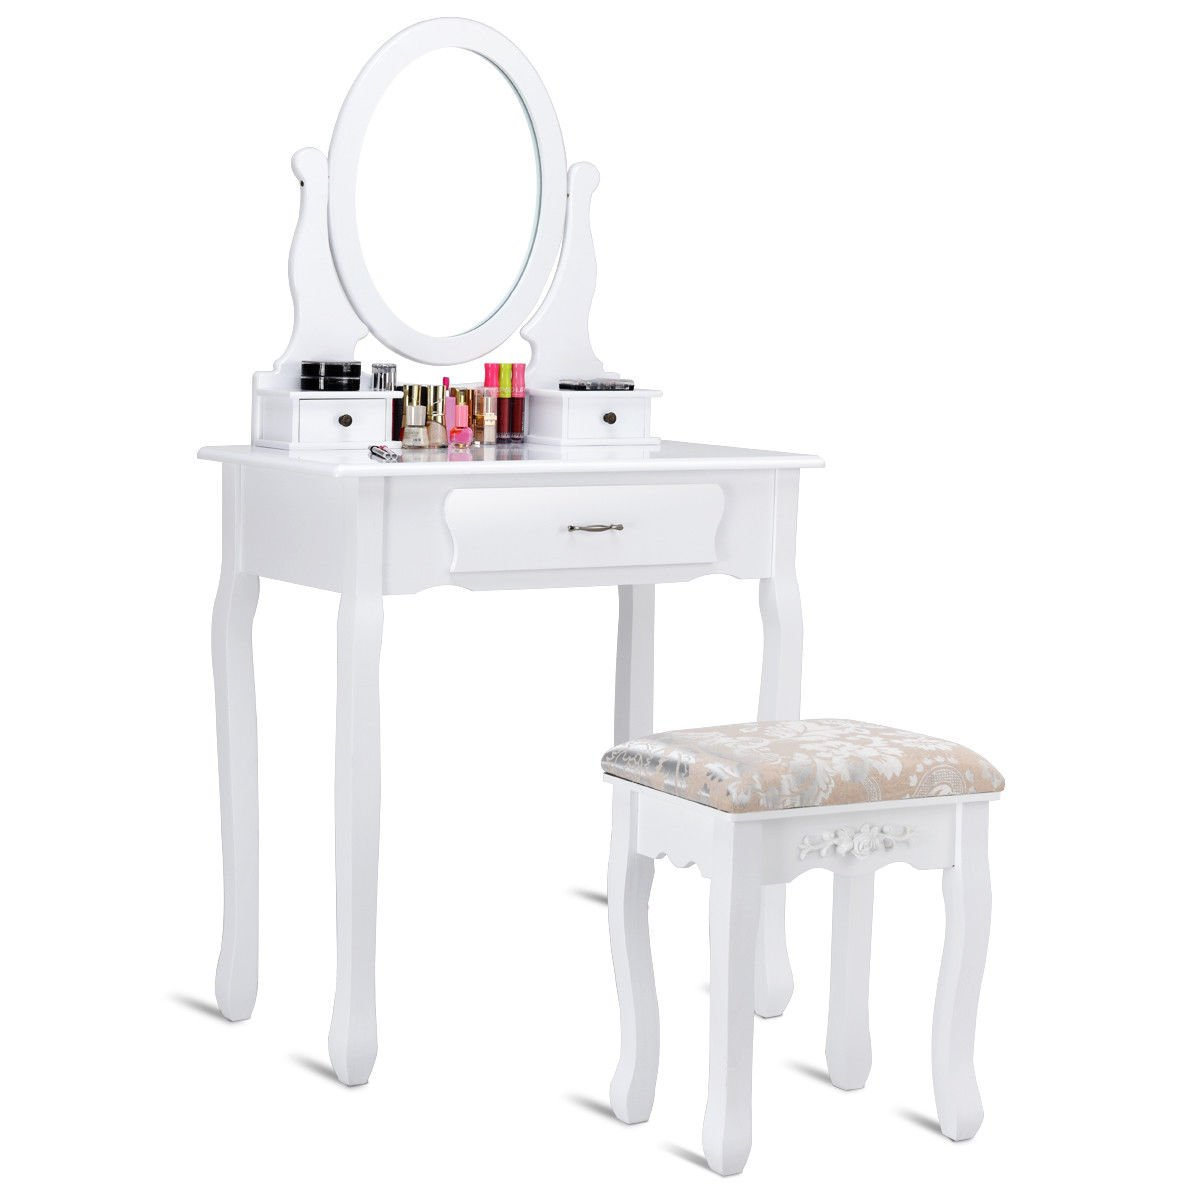 Giantex Vanity Table Set w/Stool Makeup Dressing Collection Table Set Rotatable Round Mirror Wood Jewelry Organizer Multifunctional Desk Easy Assembly White (3 Drawers)